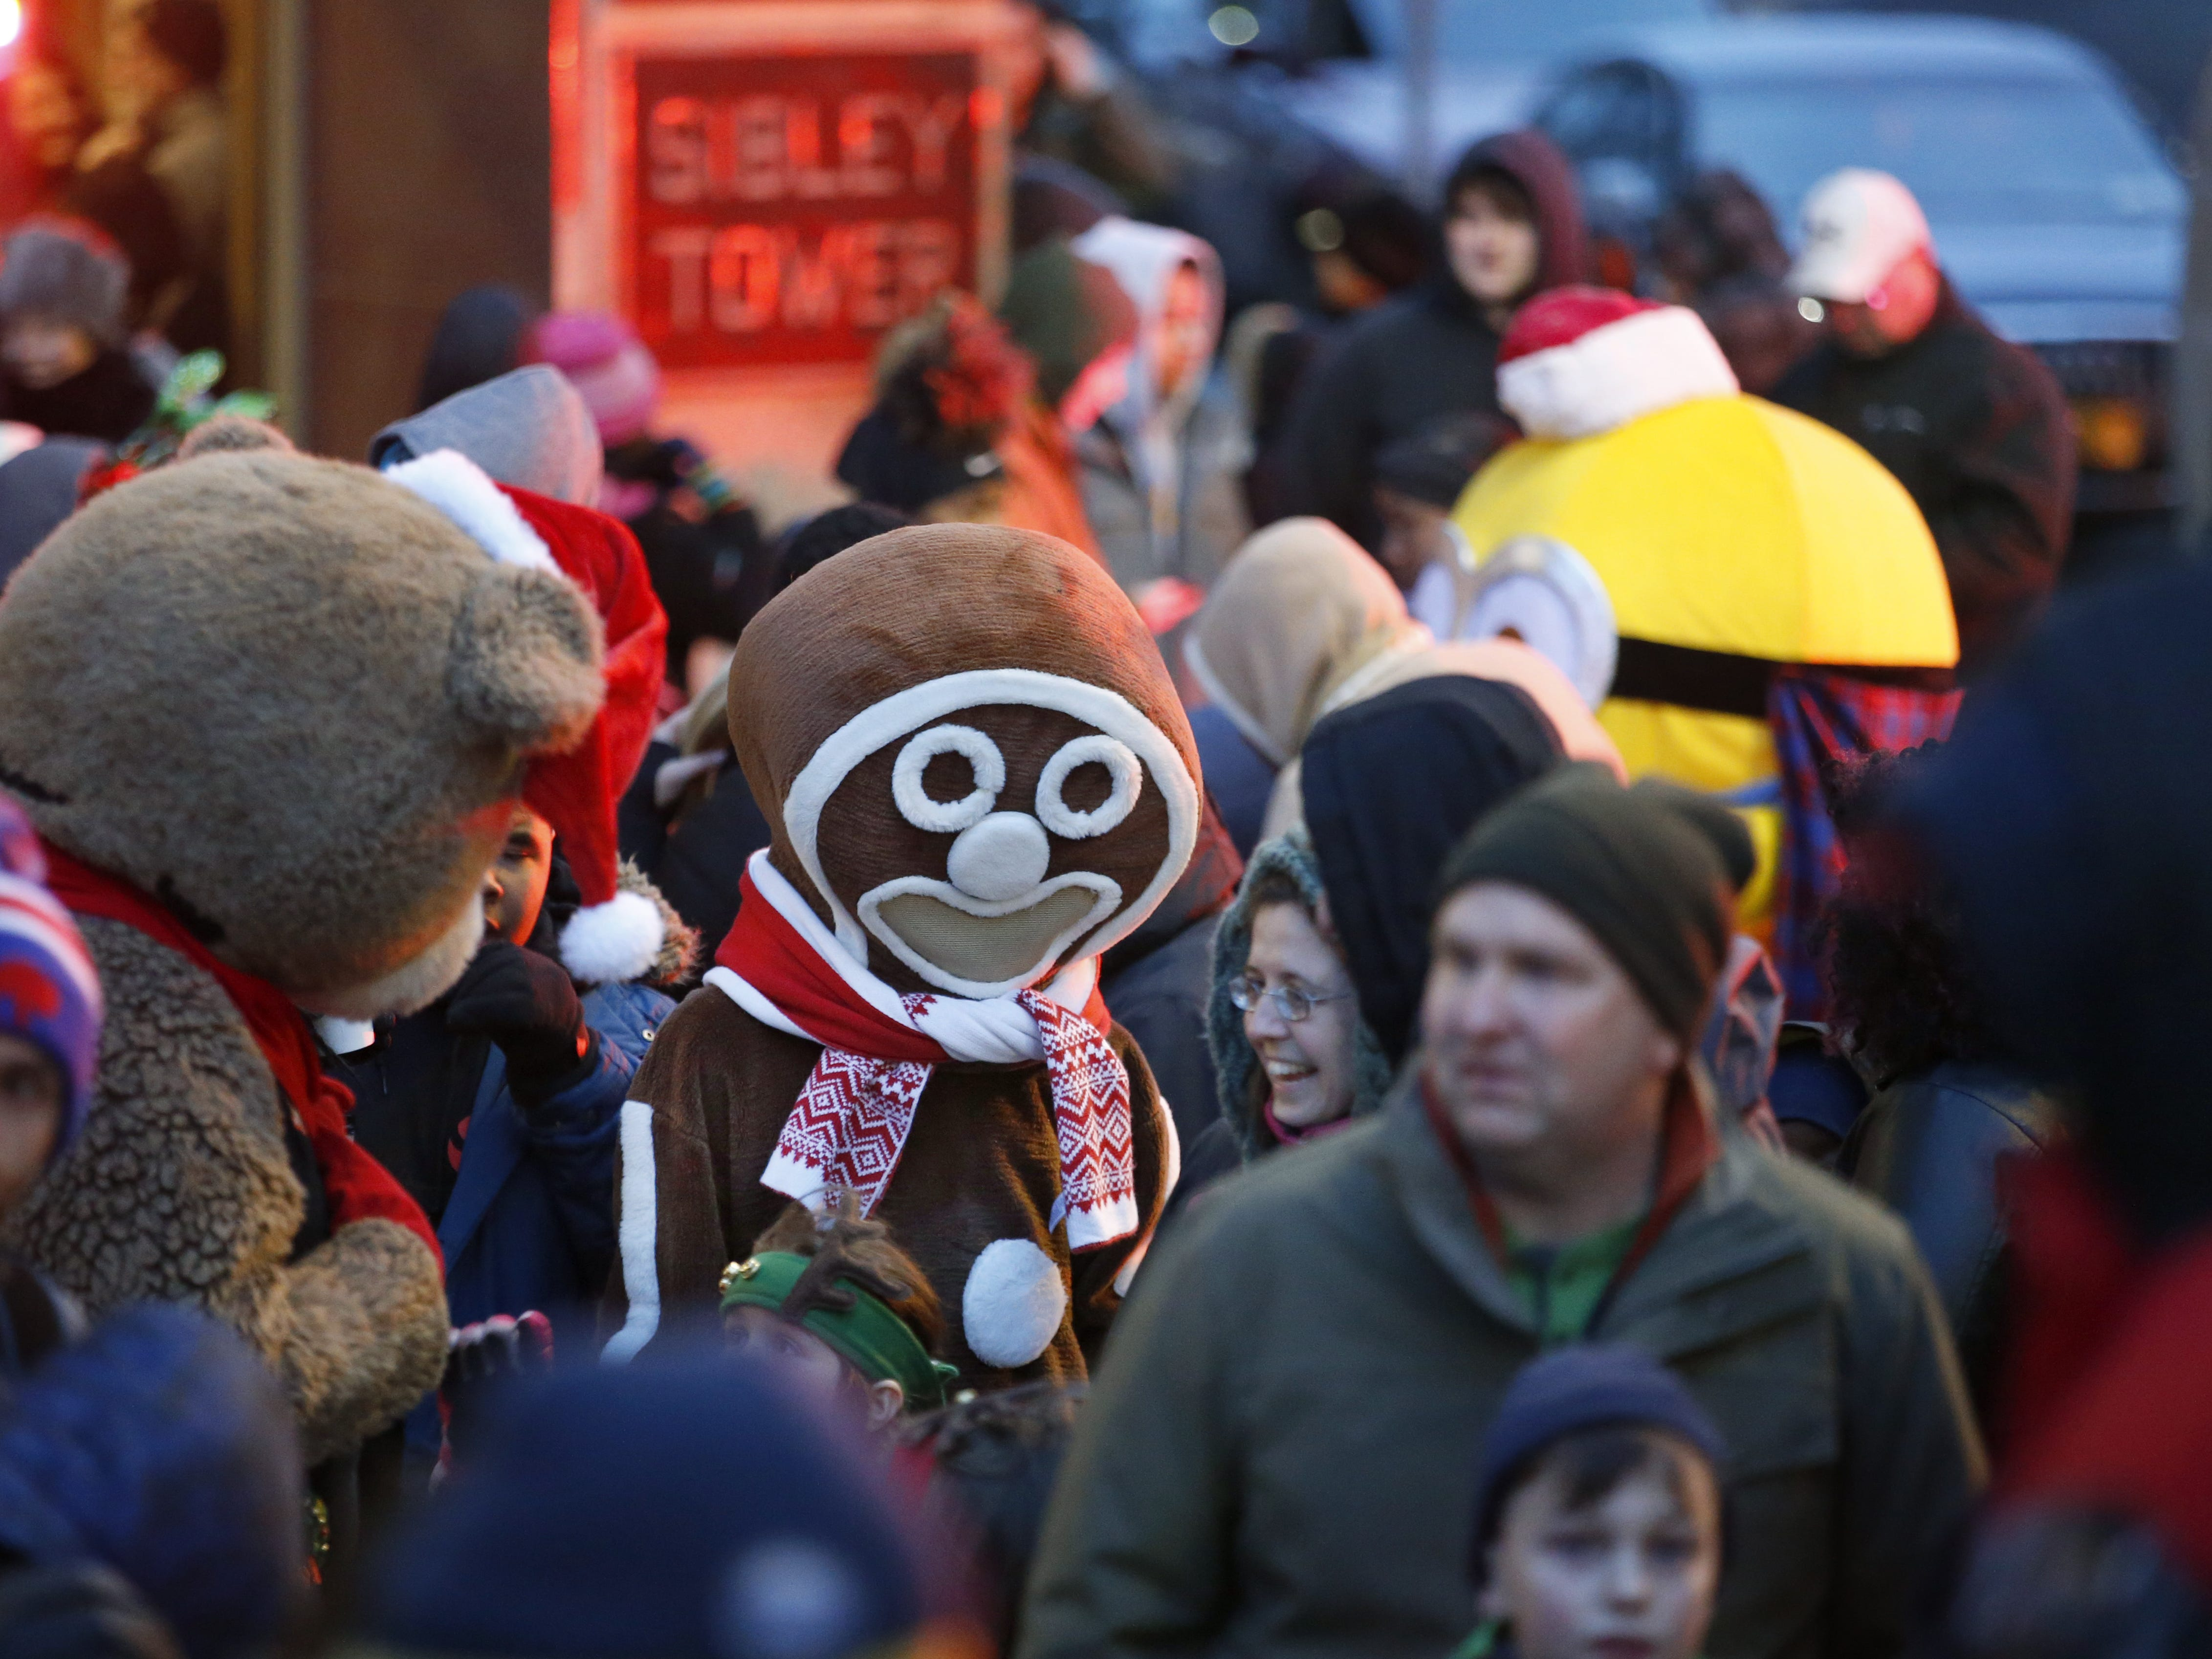 Attendees with various costumes like this one of the gingerbread man wait for the lighting of the Liberty Pole by Mayor Lovely Warren during the ROC Holiday Village event.